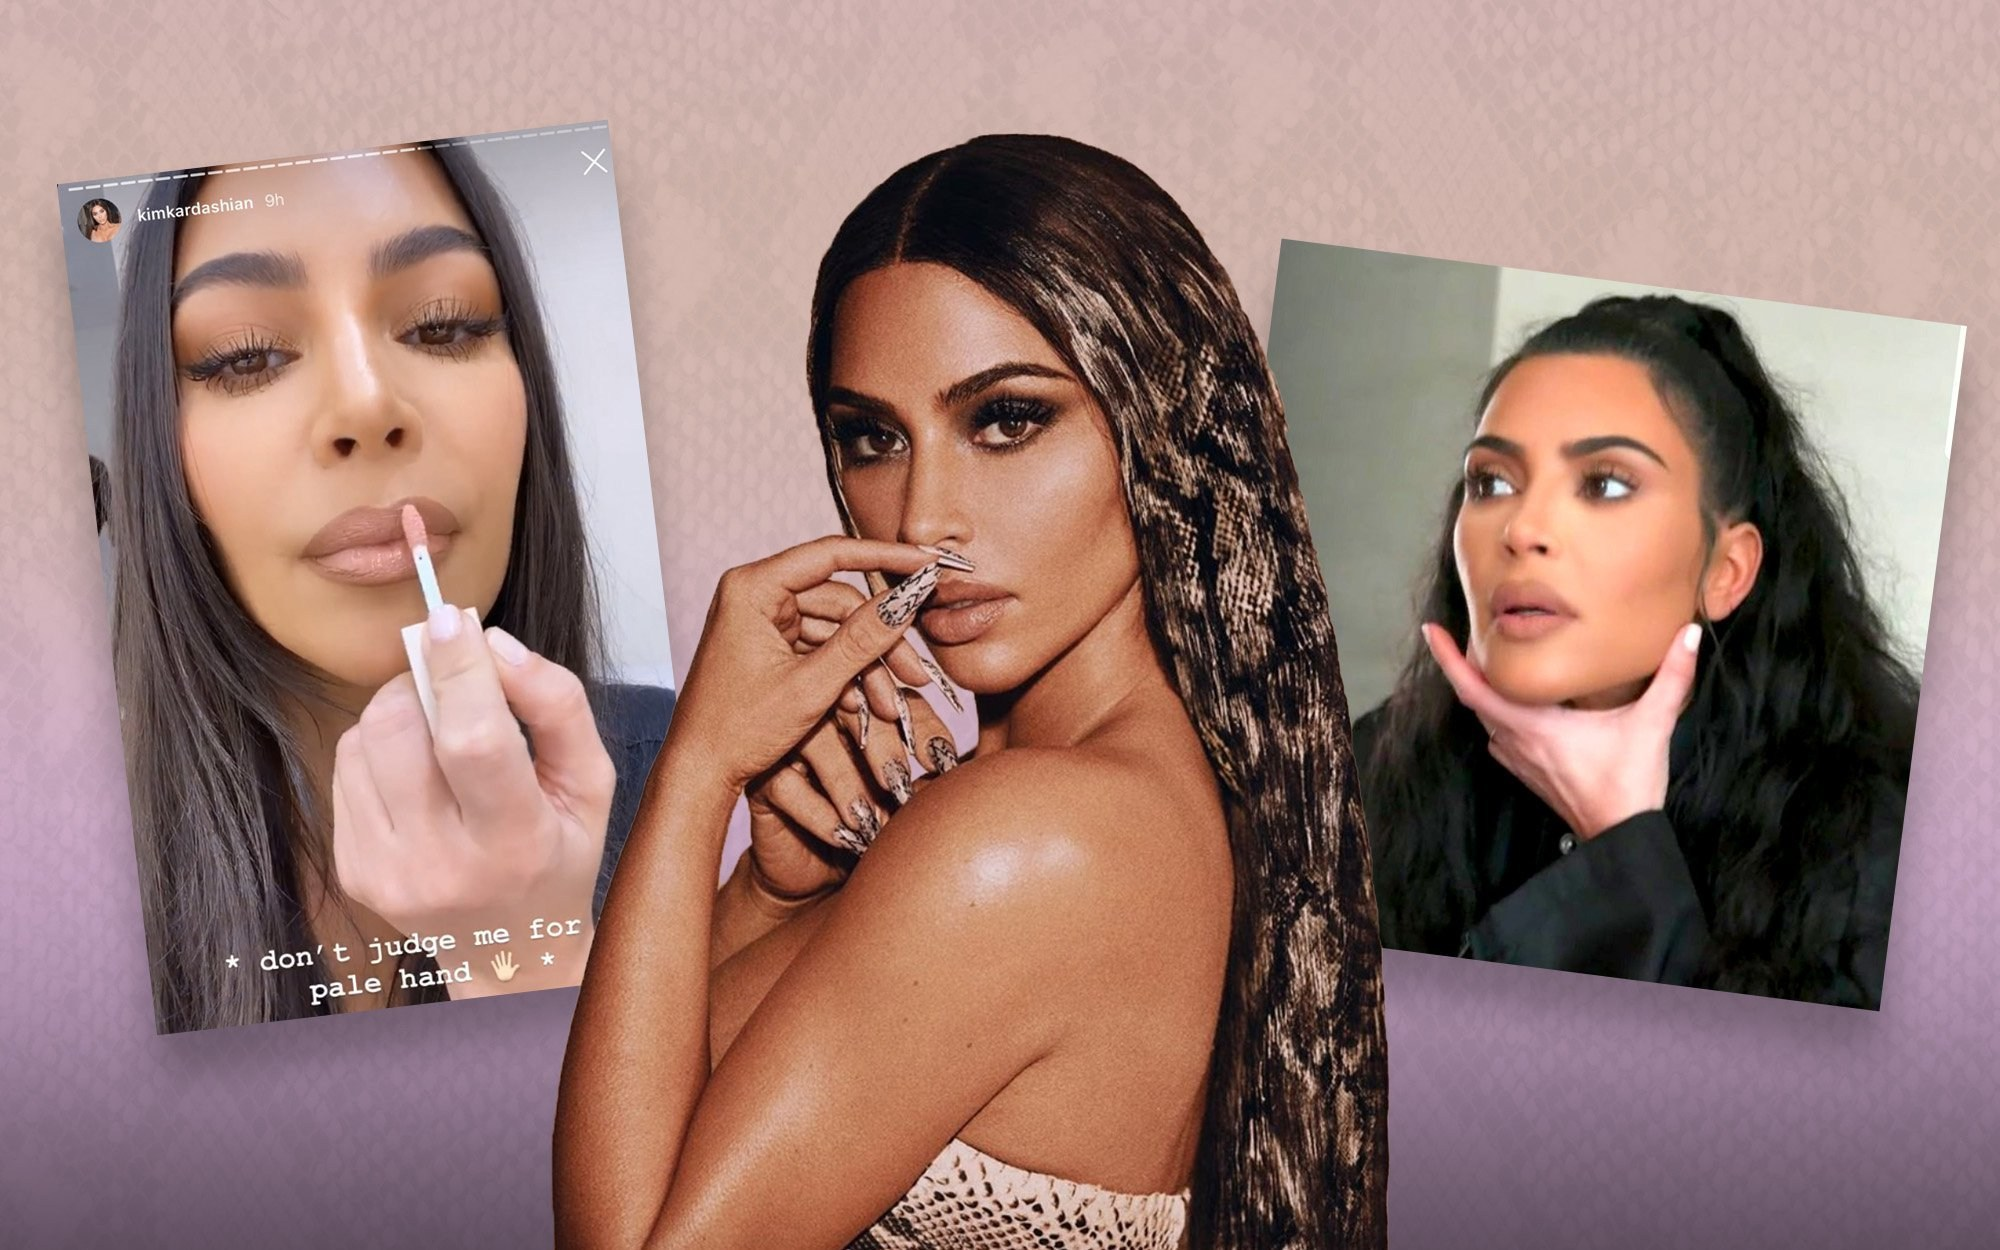 Kim Kardashian's blackfishing claims and Photoshop fails as she suffers another blunder